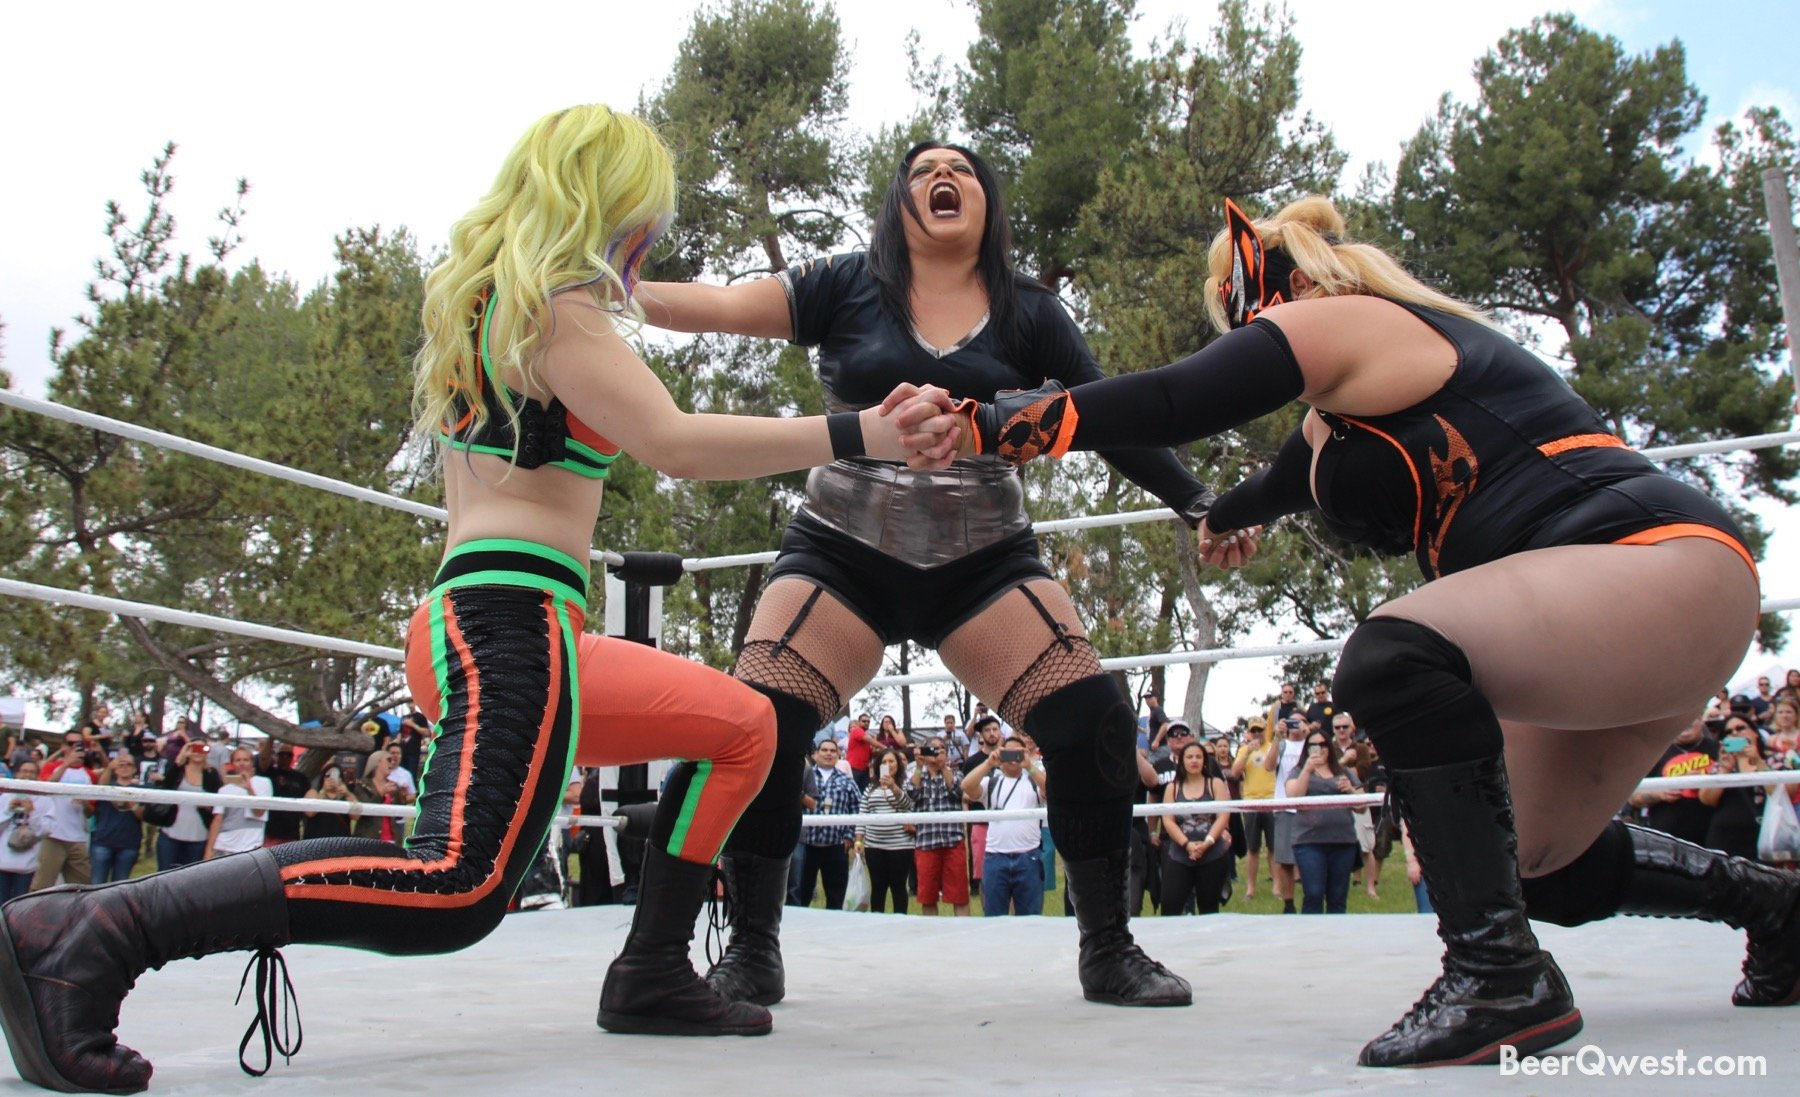 Female Ring Fighters